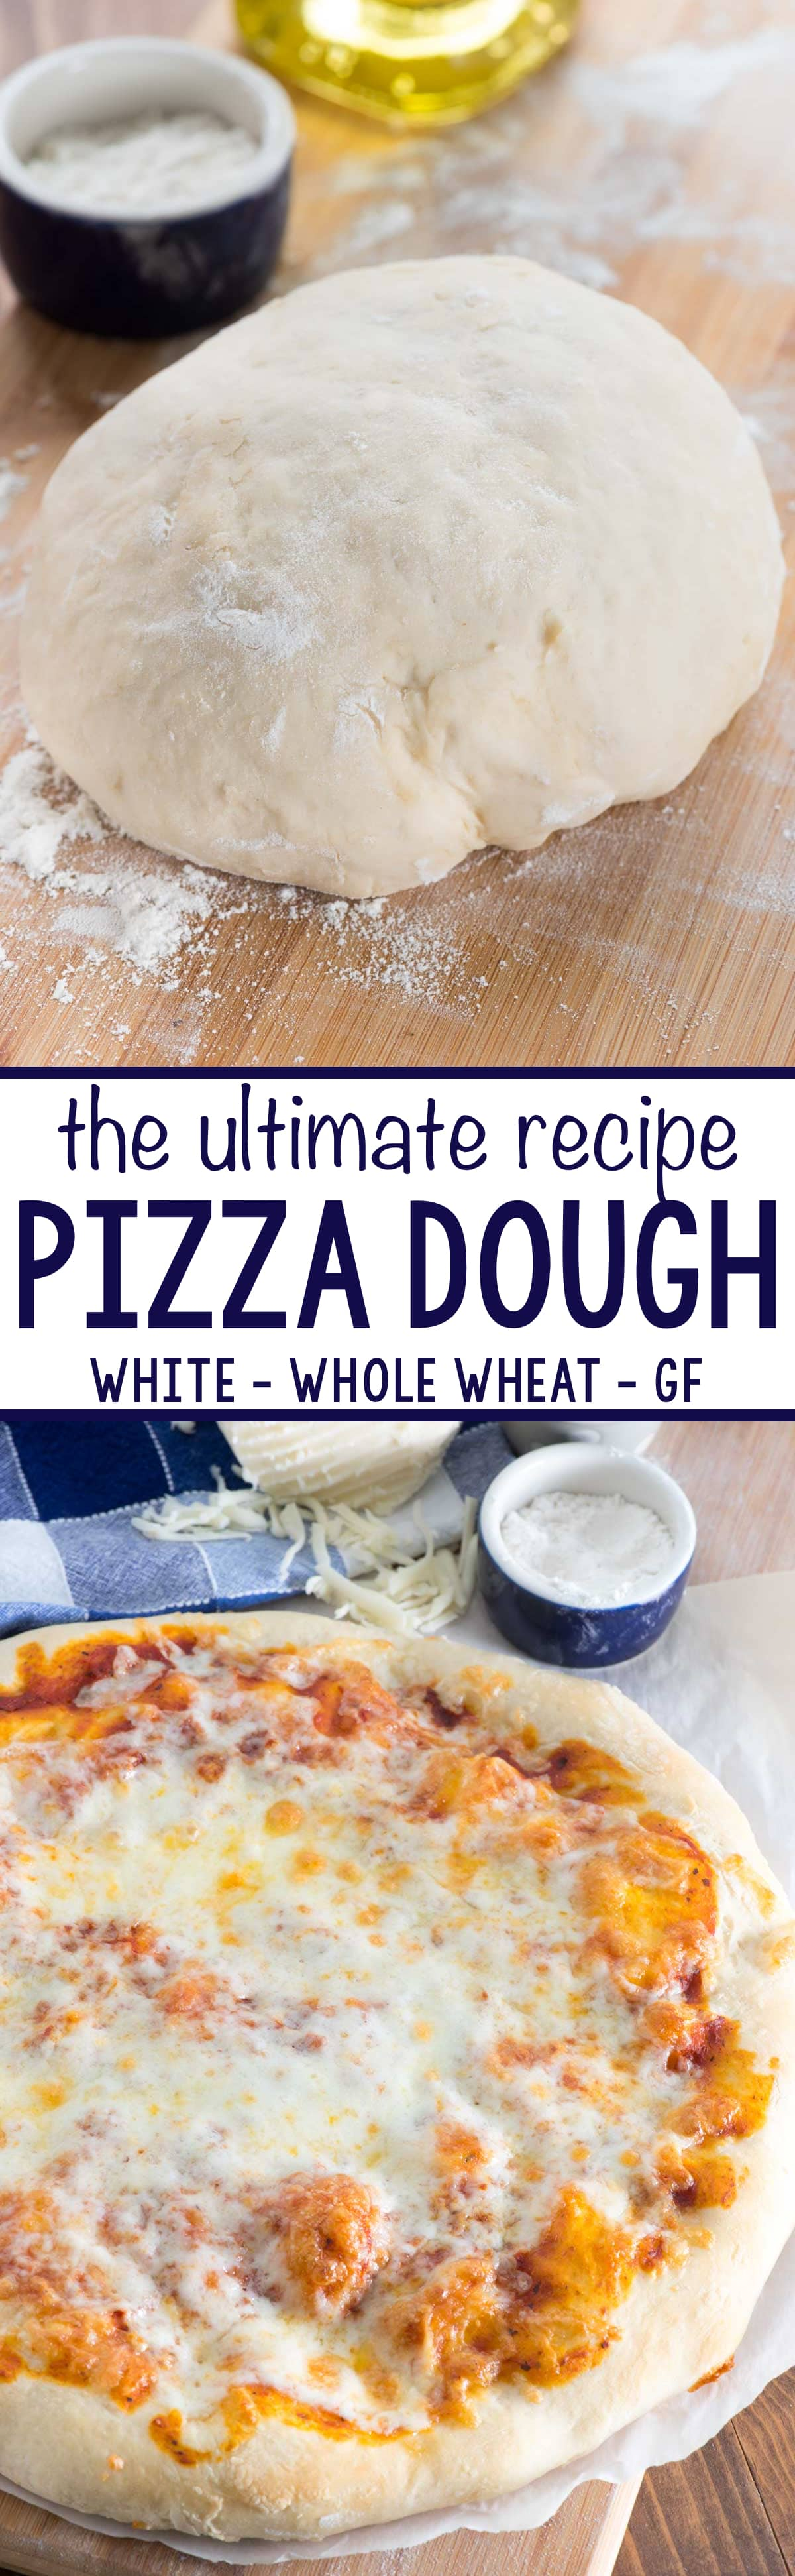 This is the ULTIMATE Pizza Dough Recipe! This easy pizza crust recipe can be made thick, thin, or personal sized with whole wheat or gluten free flour. You can make a baked pizza crust or a grilled pizza recipe. Top it with whatever you like for the best dinner, or make a dessert pizza!